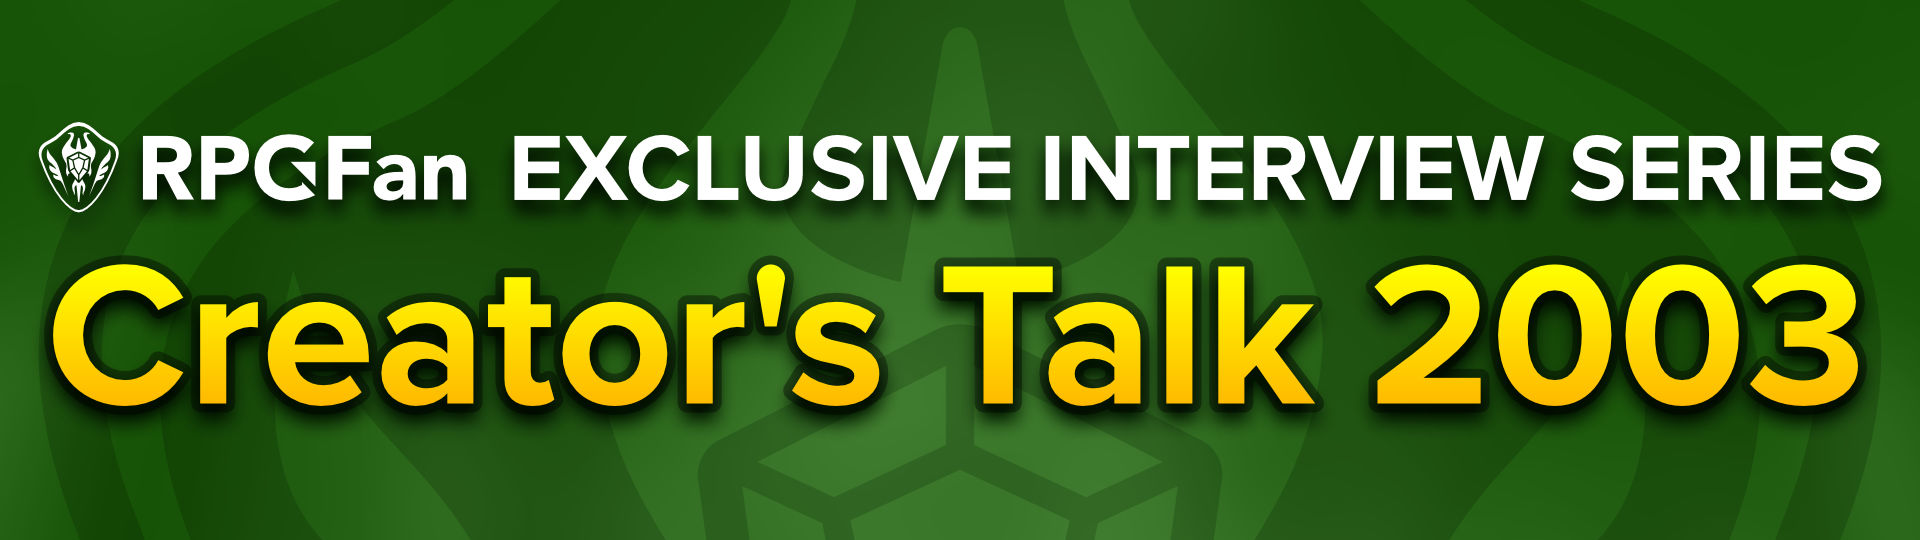 RPGFan Exclusive Interview Series - Creator's Talk 2003 Featured